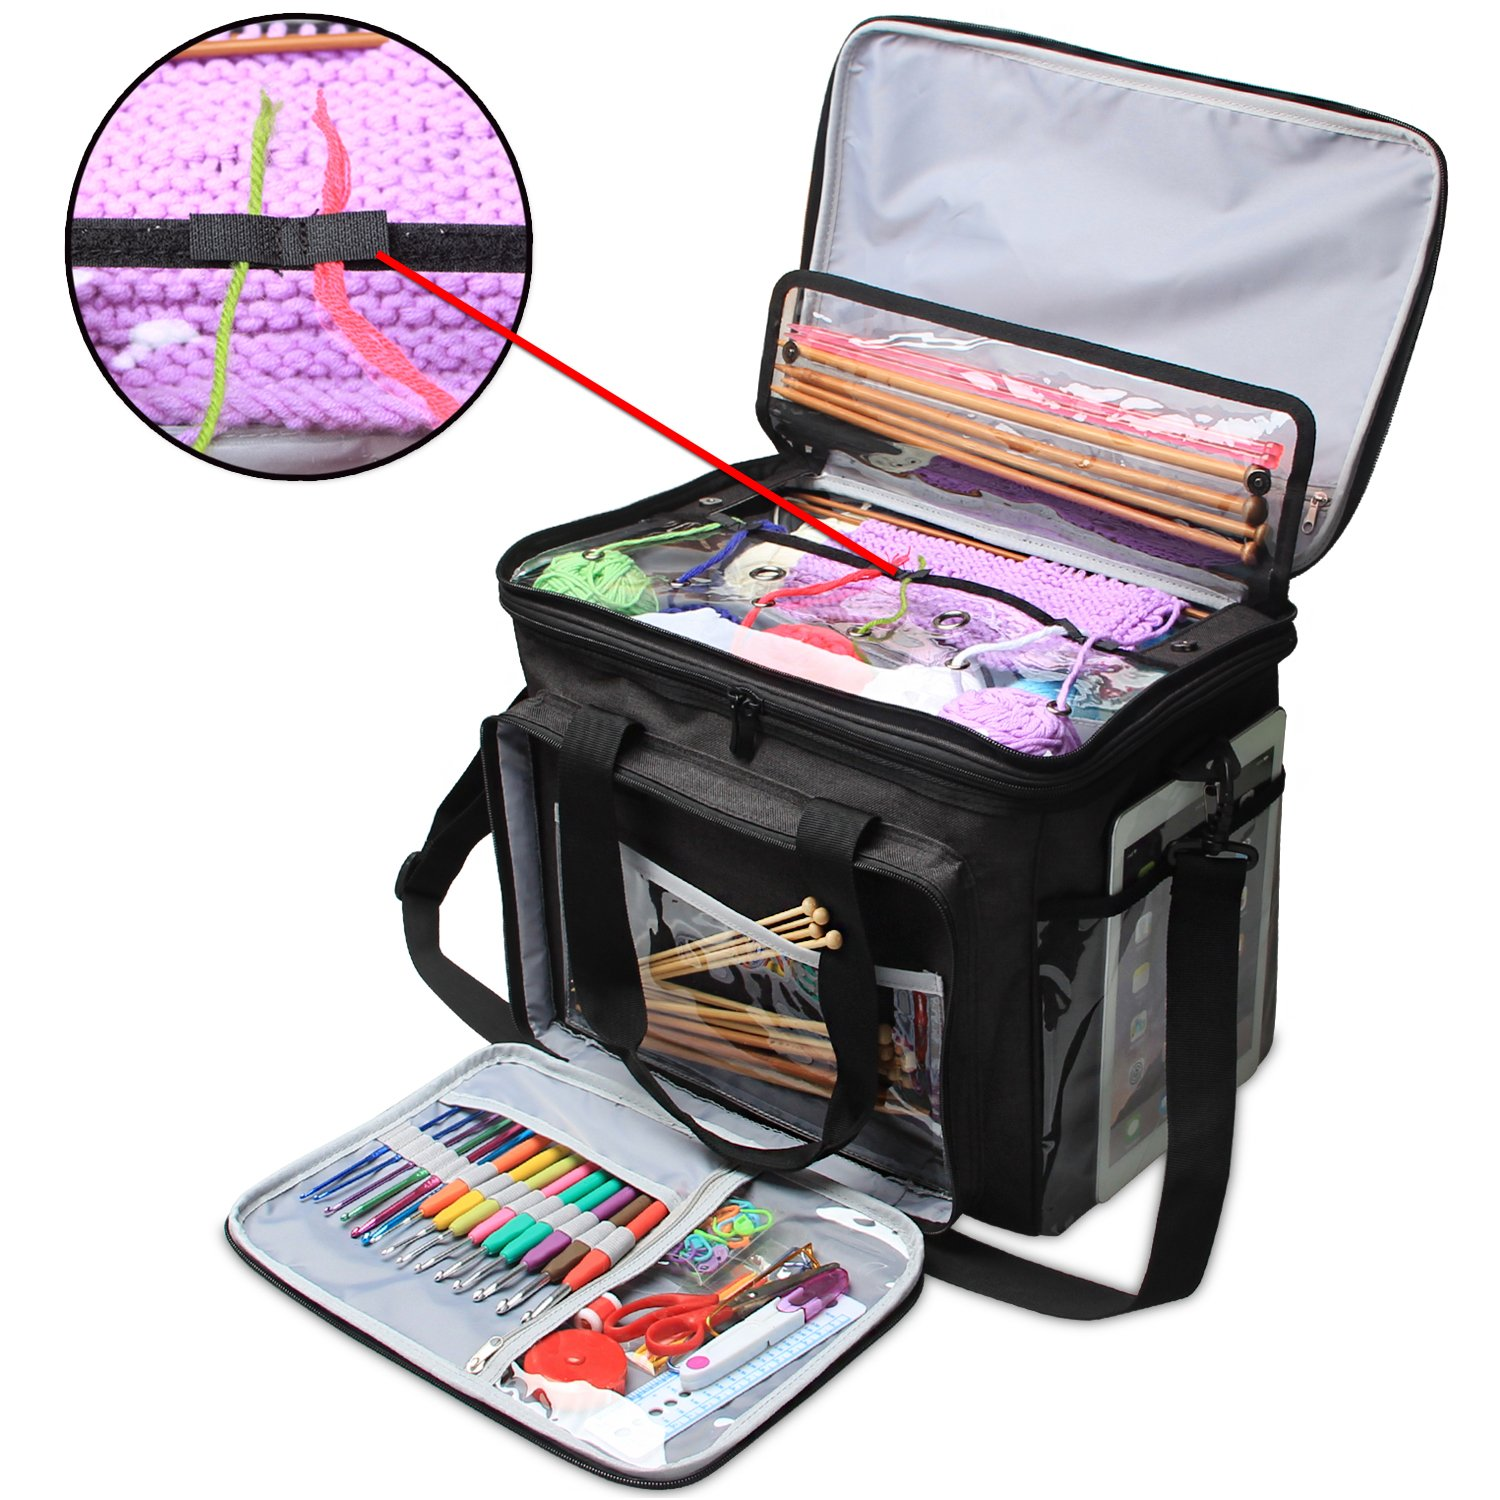 Teamoy Knitting Bag, Yarn Tote Organizer with Cover and Inner Divider (Sewn to Bottom) for Crochet Hooks, Knitting Needles(up to 14''), Project and Supplies, Black(No Accessories Included)